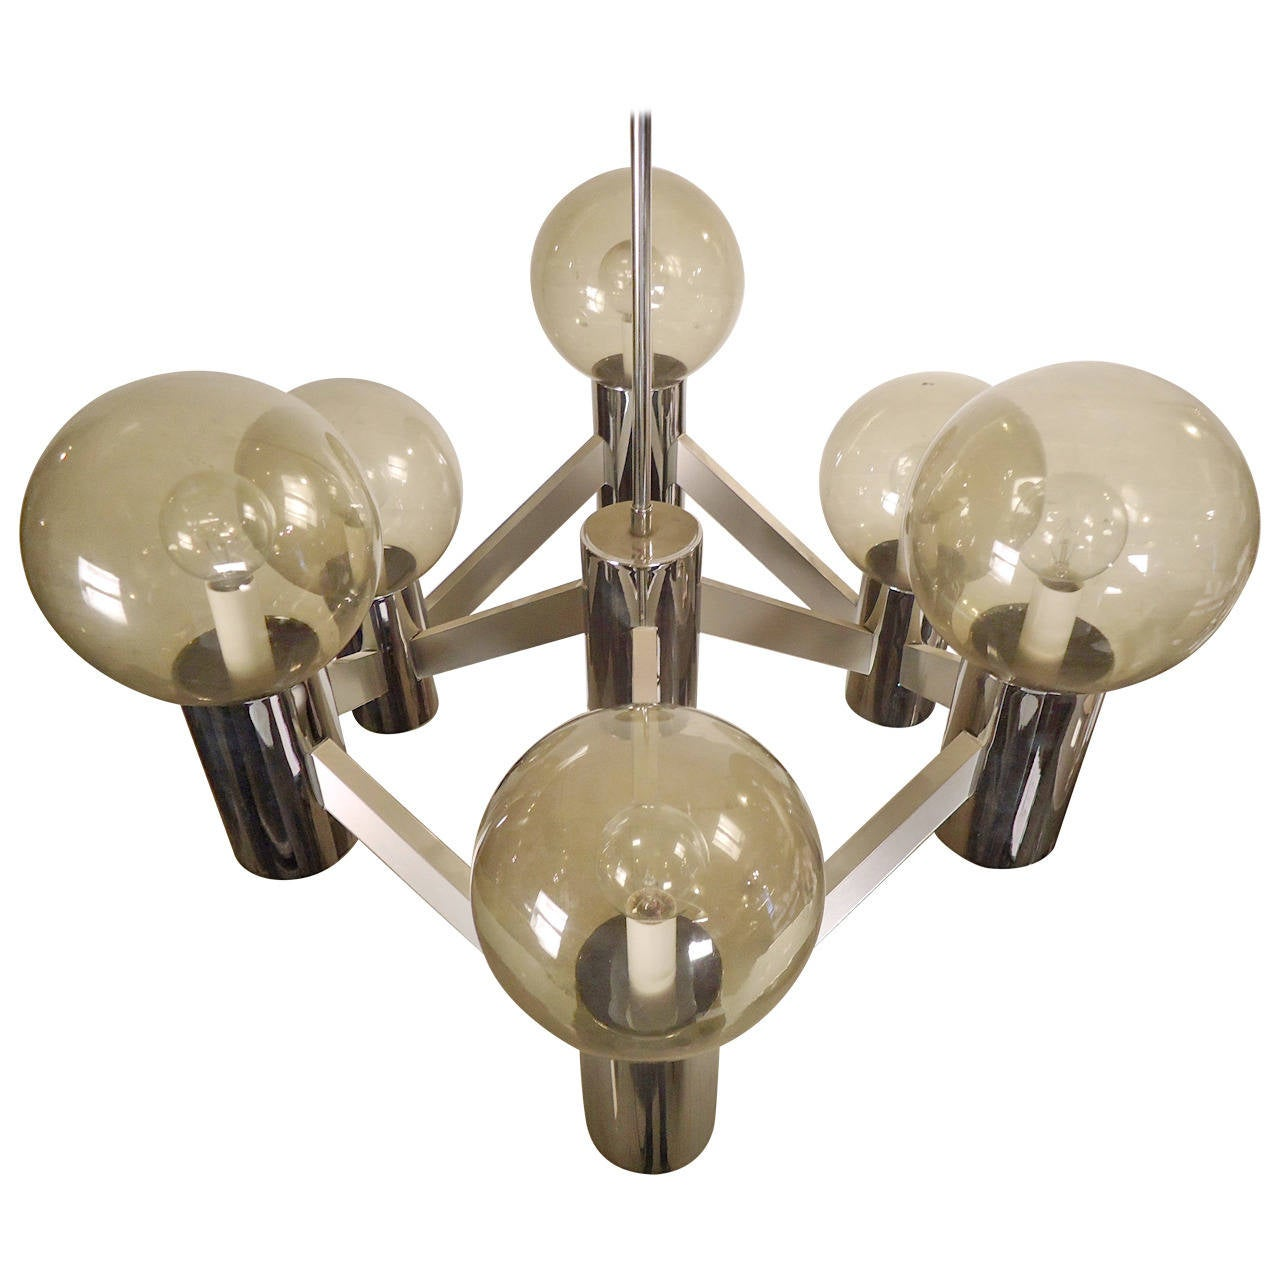 French Art Deco Chandelier besides Art Deco Bathroom Light Fixtures furthermore Old Electrical Wiring No Ground as well 19th Century Light Fixtures besides Mid Century Globe Chandelier. on chandelier wiring